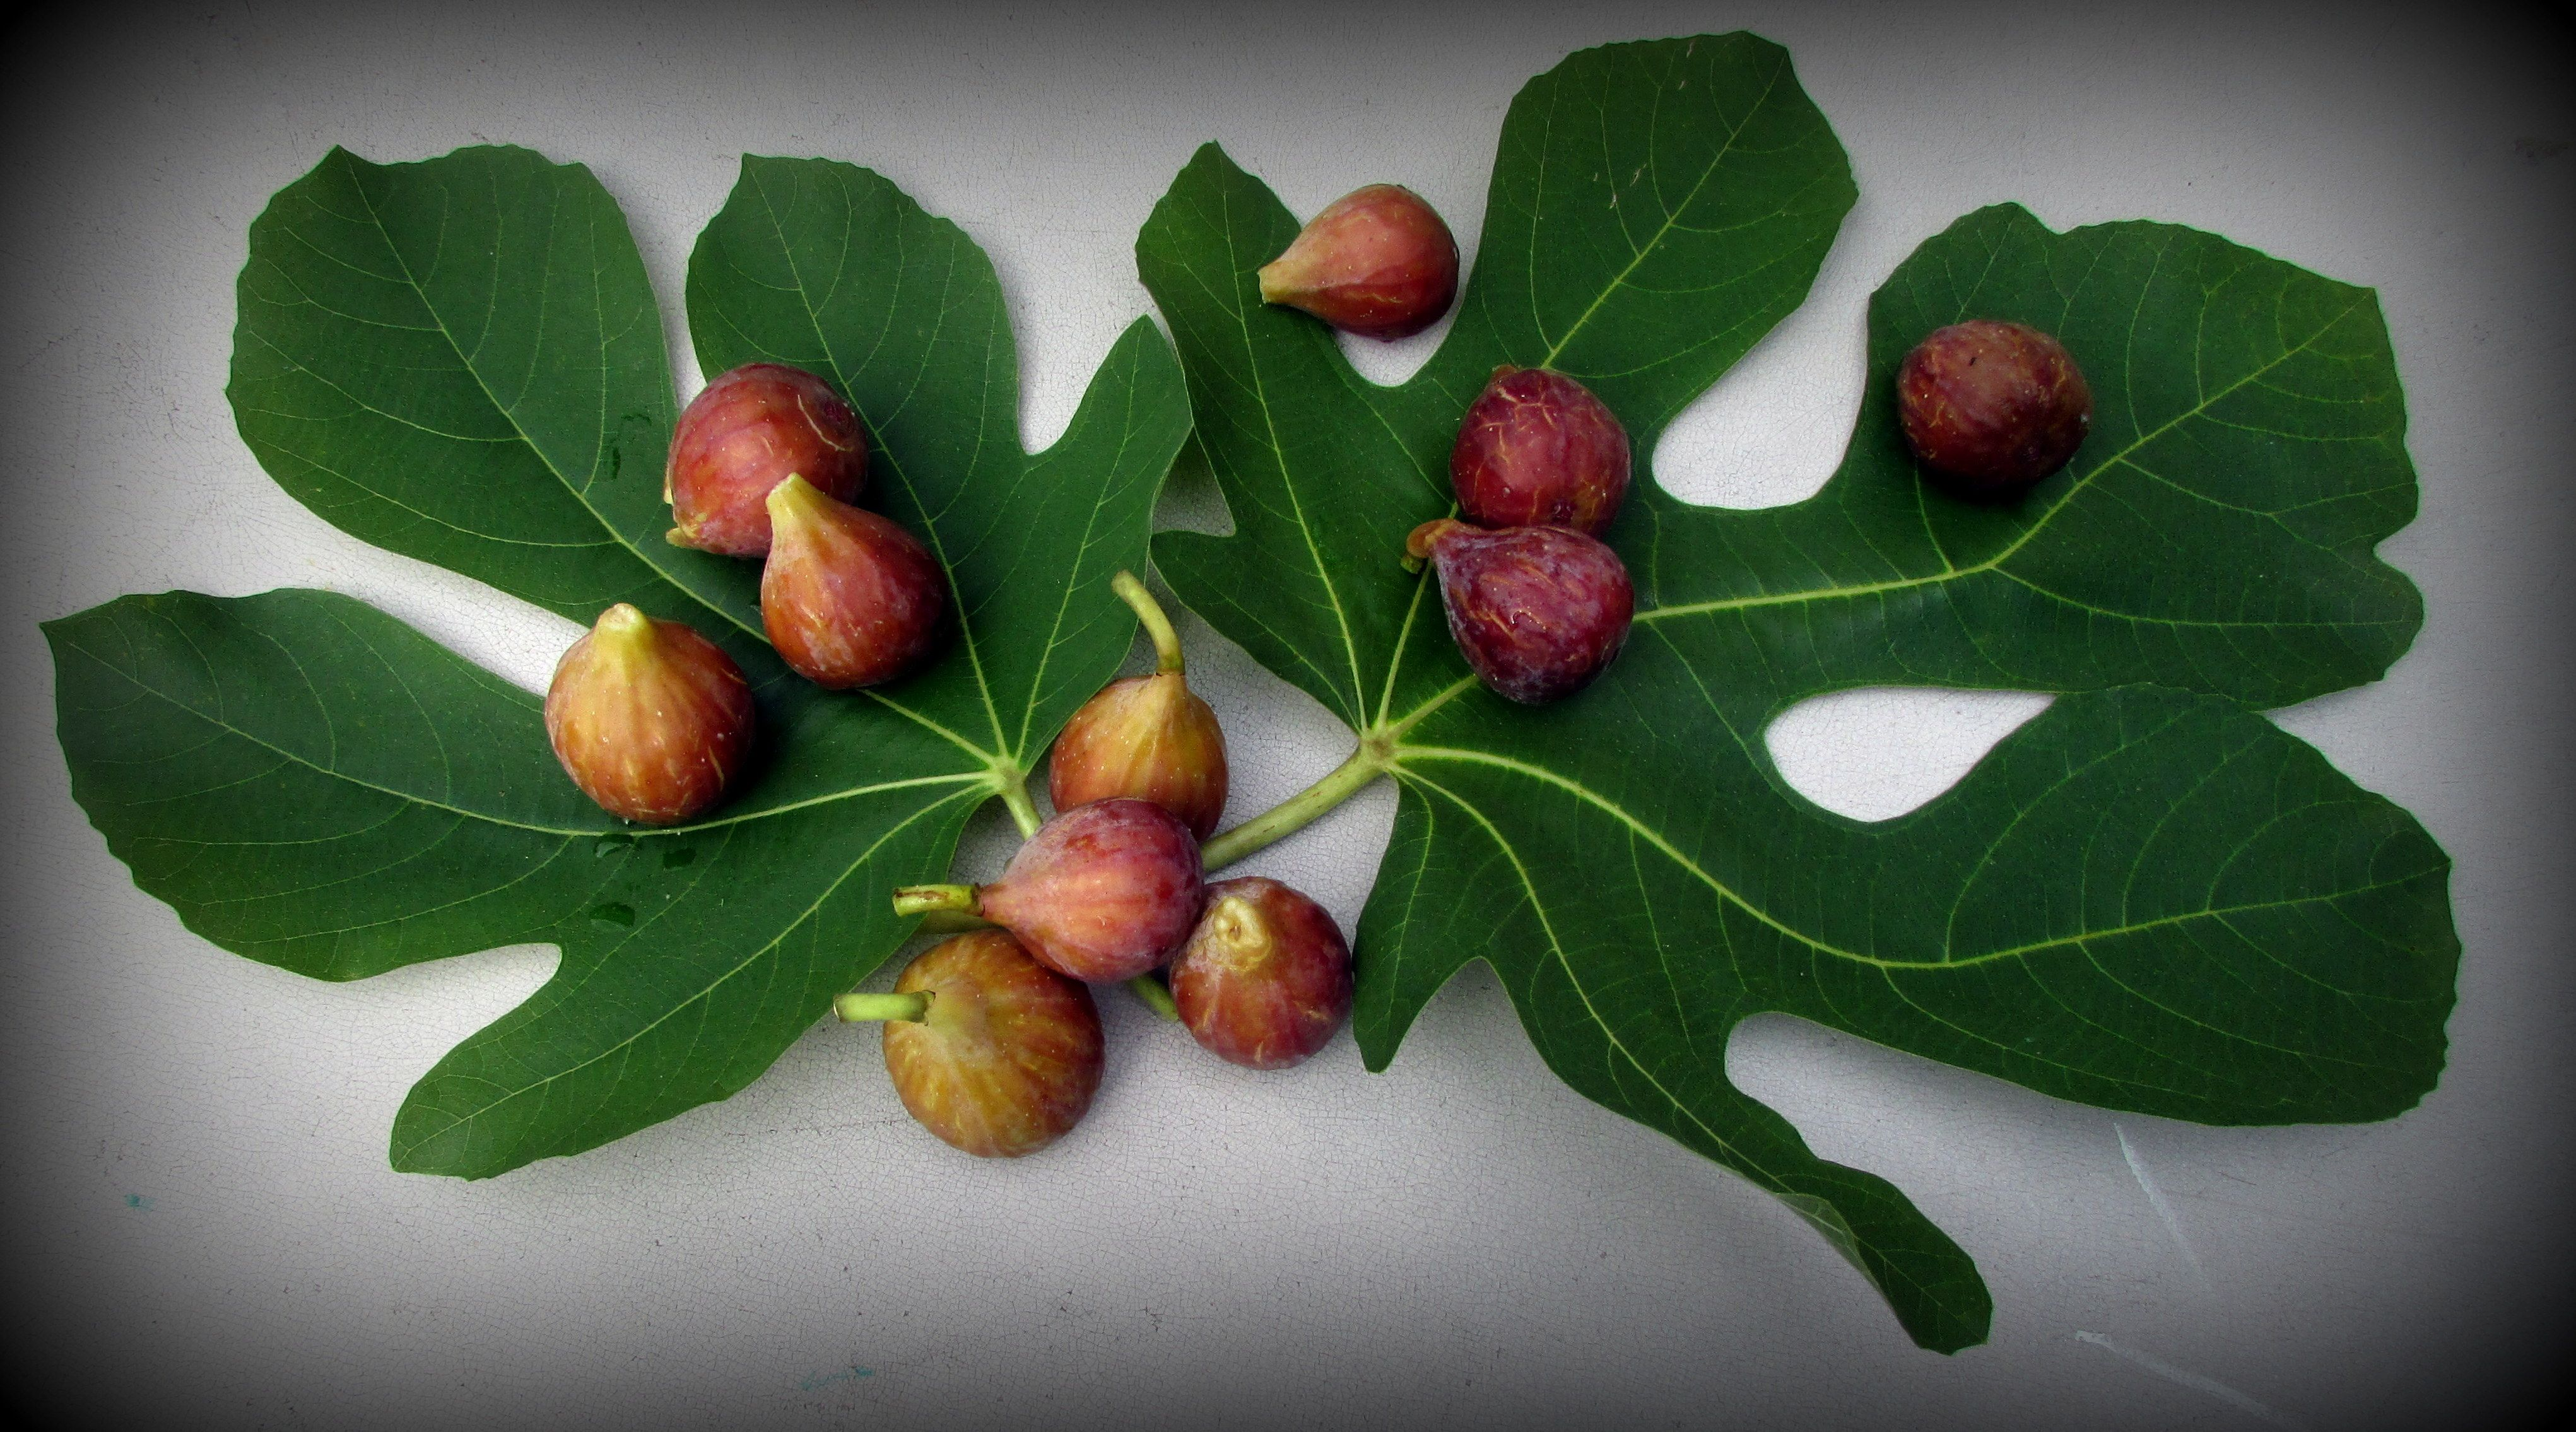 Fig Time (and the terroir we call home) http://www.foodshedplanet.com/2013/08/happiness-is_11.html